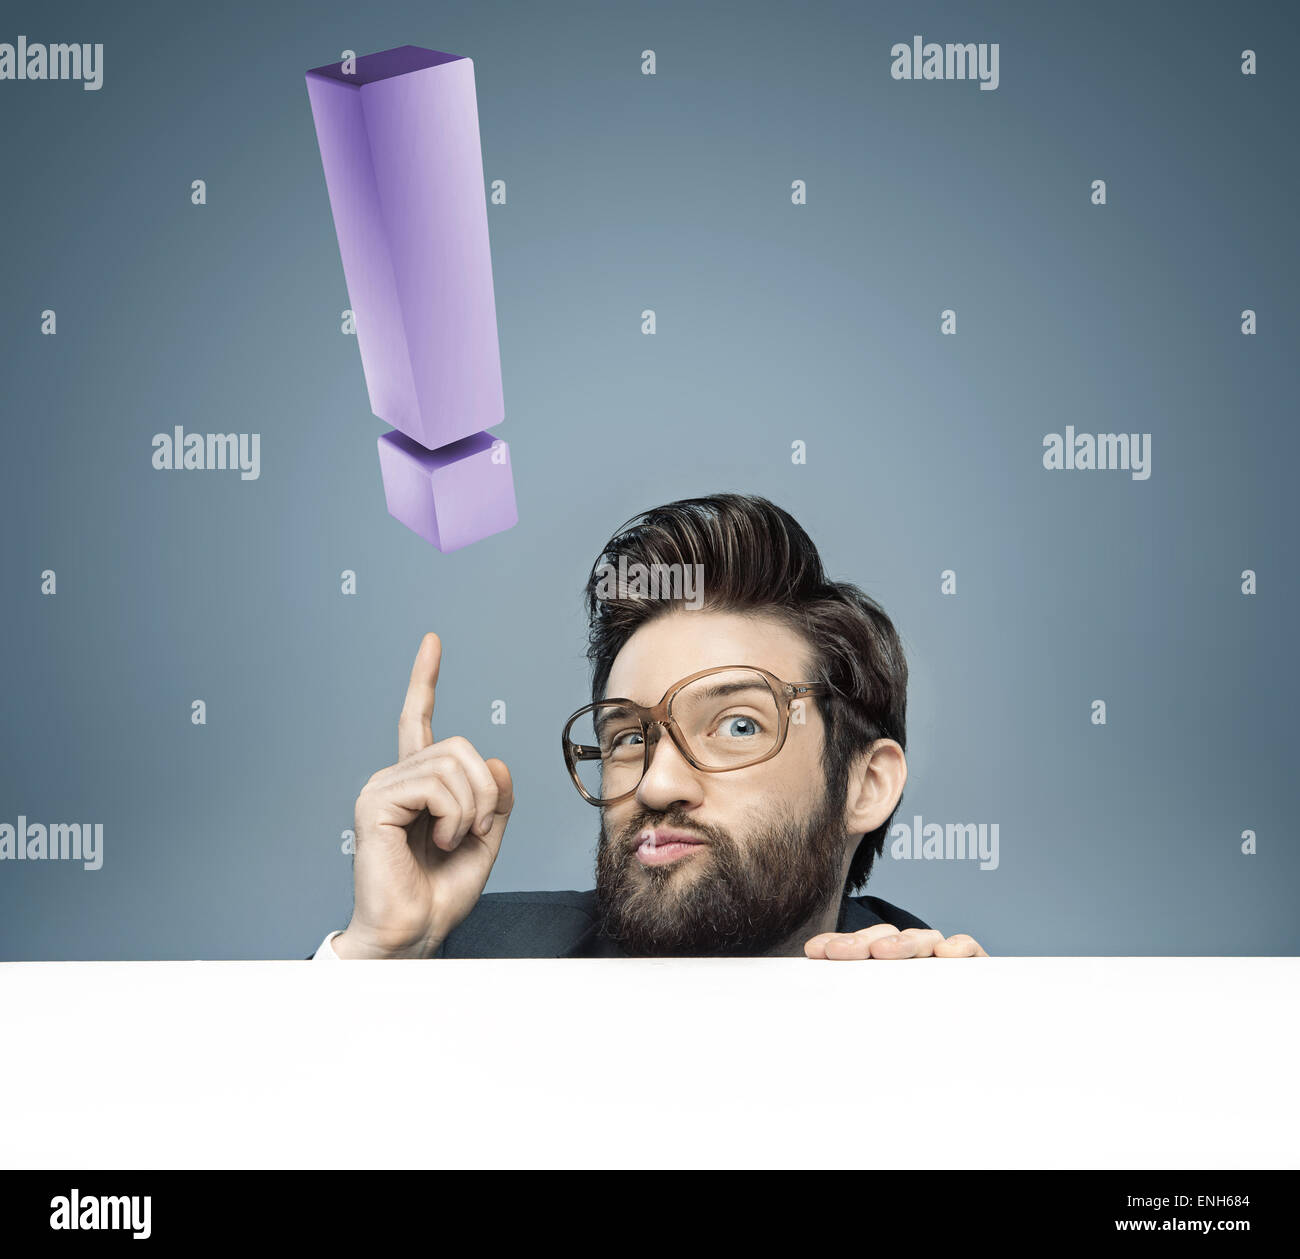 Portrait of a man with a huge exclamation mark - Stock Image